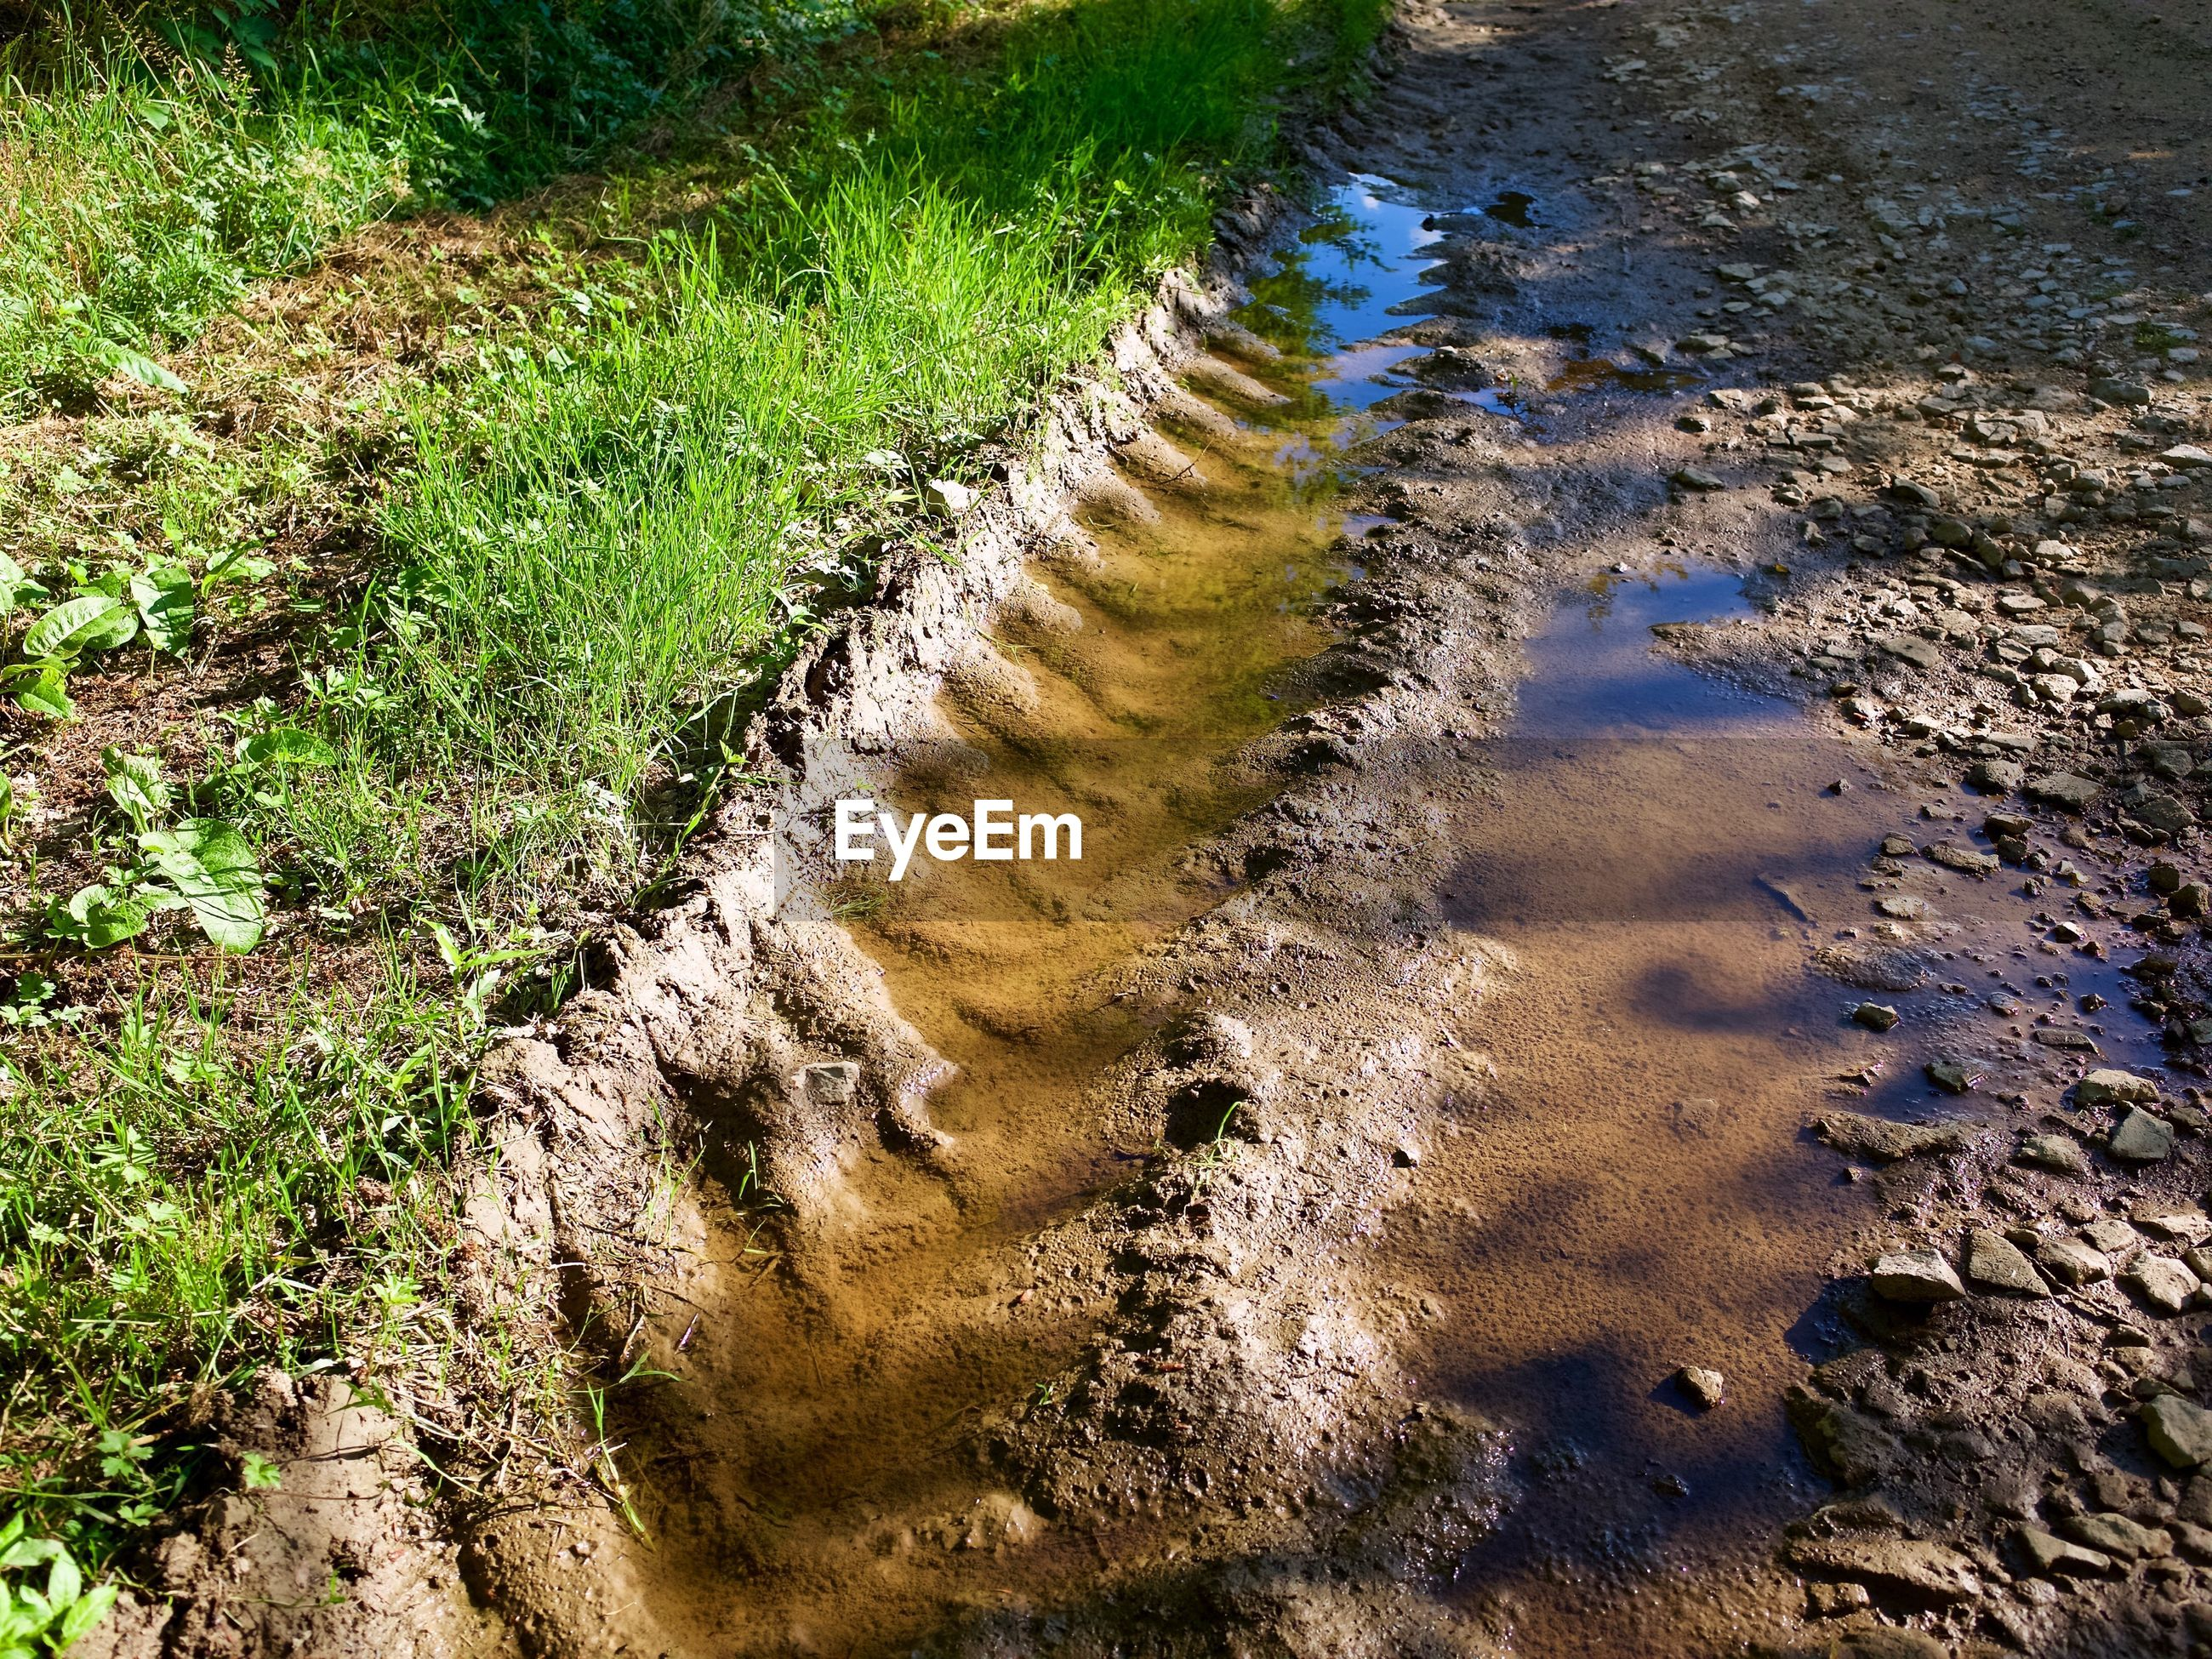 Water collected on tire track